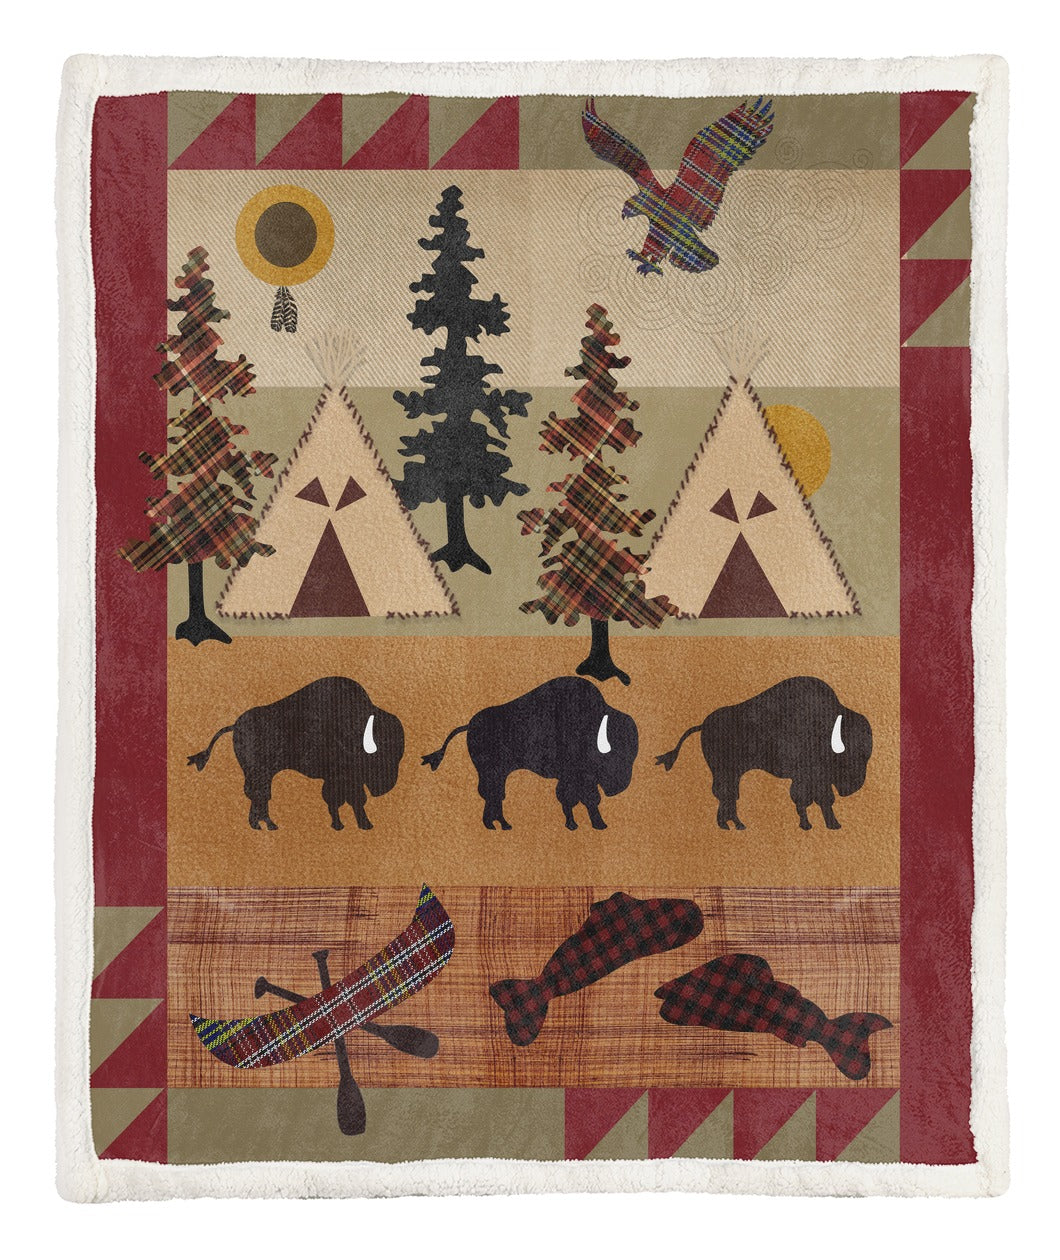 native-american-throw-blanket-tabccc1910390